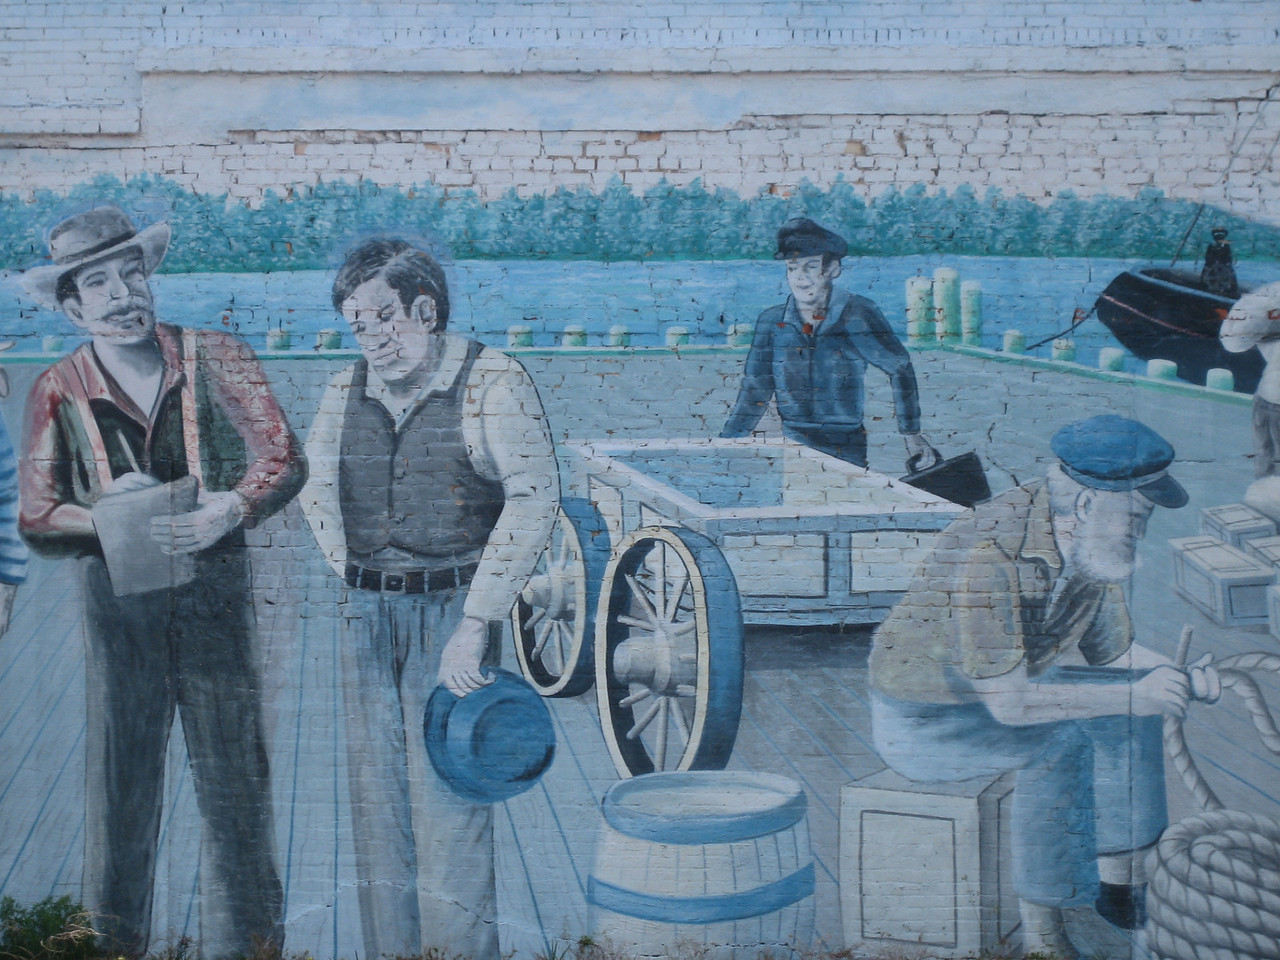 Detail of mural in Milton